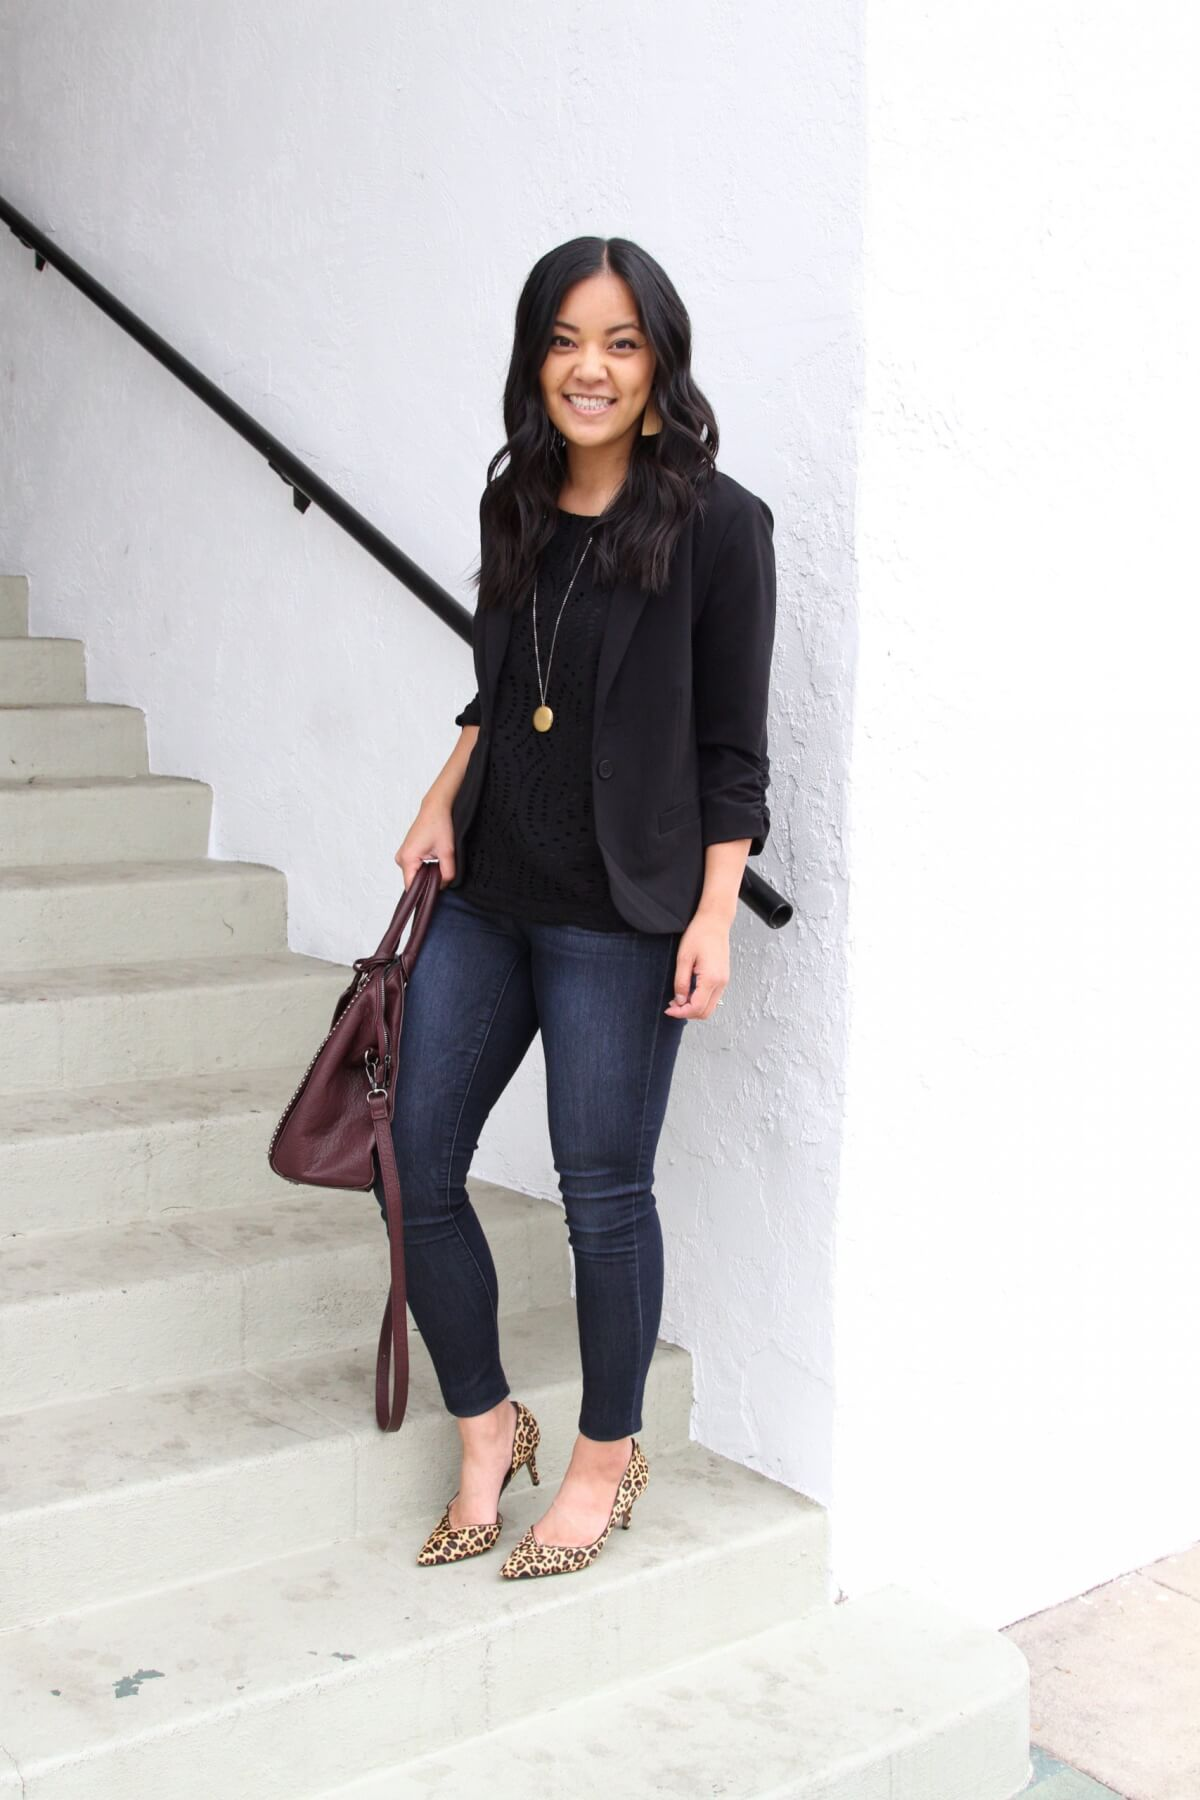 Elevated Casual Outfit: solid-colored top black + black blazer + blue jeans + leopard heels + gold pendant + burgundy bag